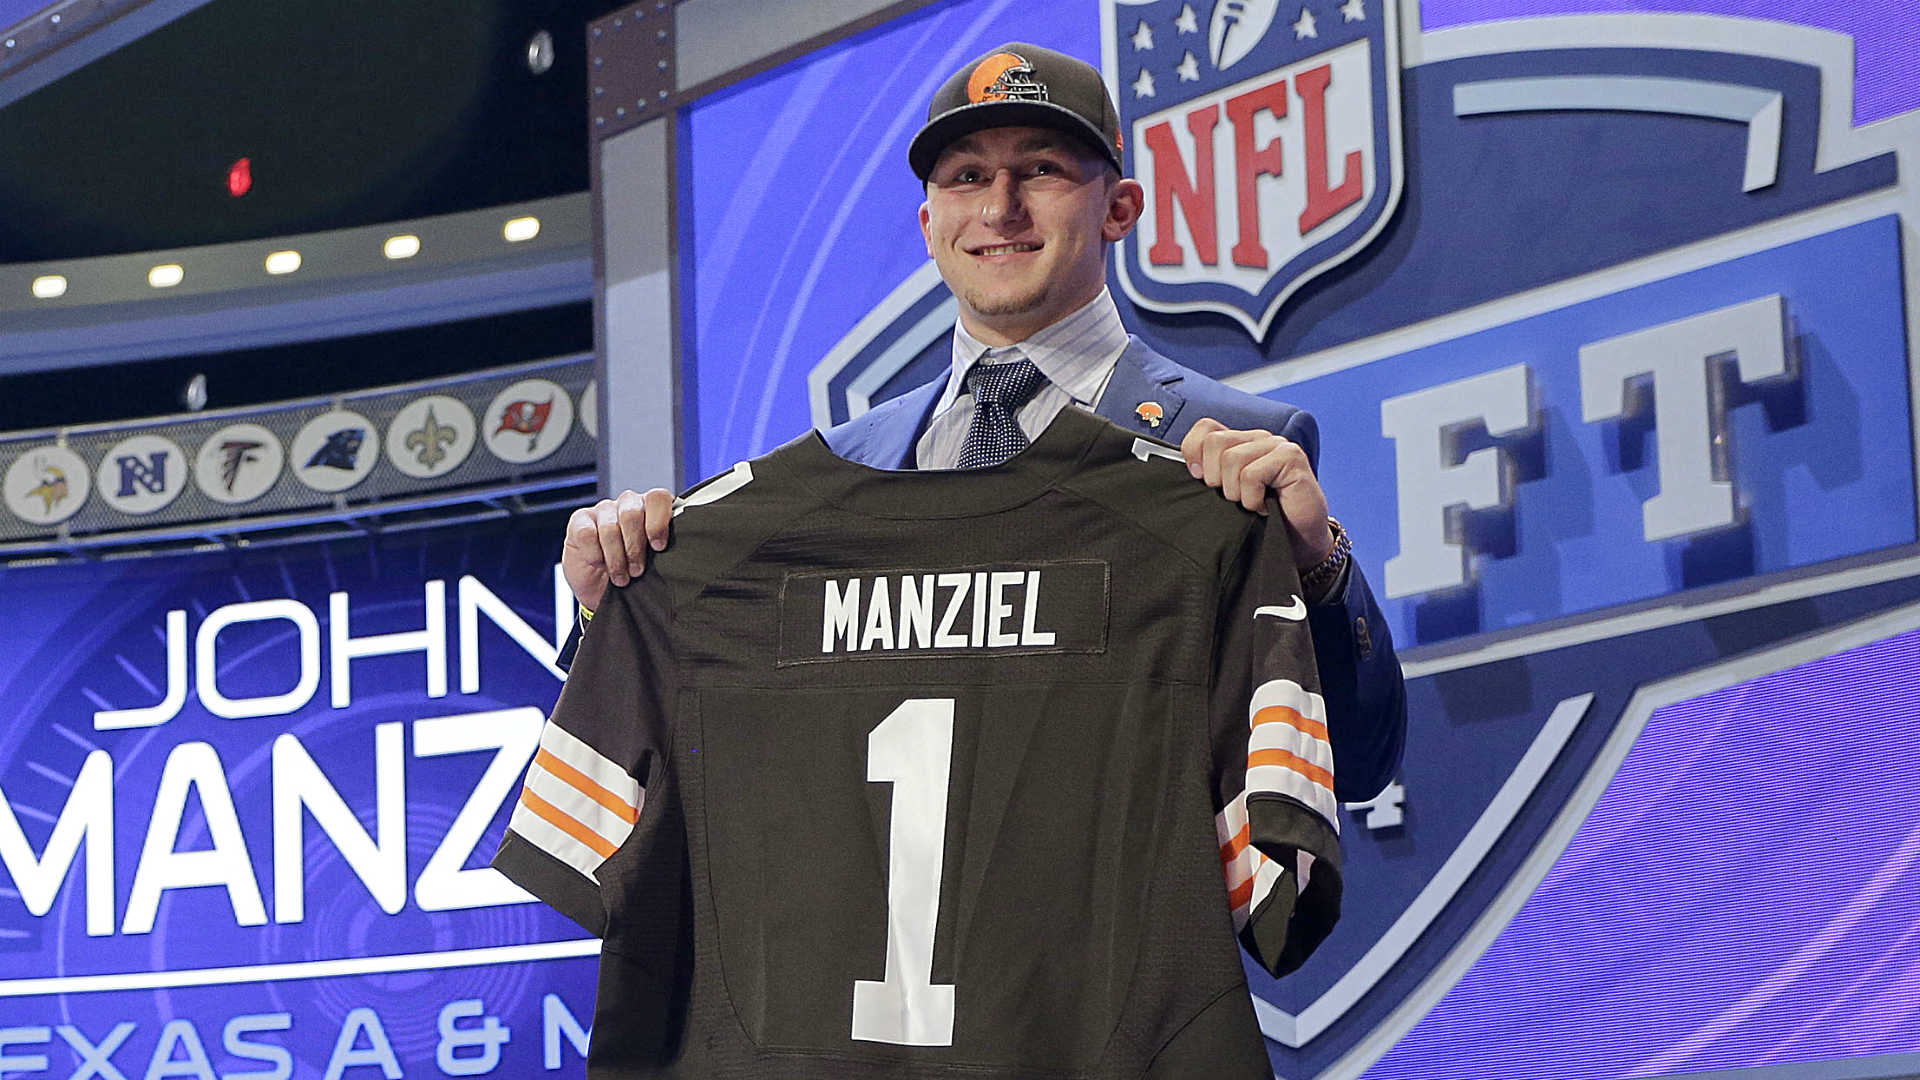 Johnny Manziel-050814-AP-FTR.jpg